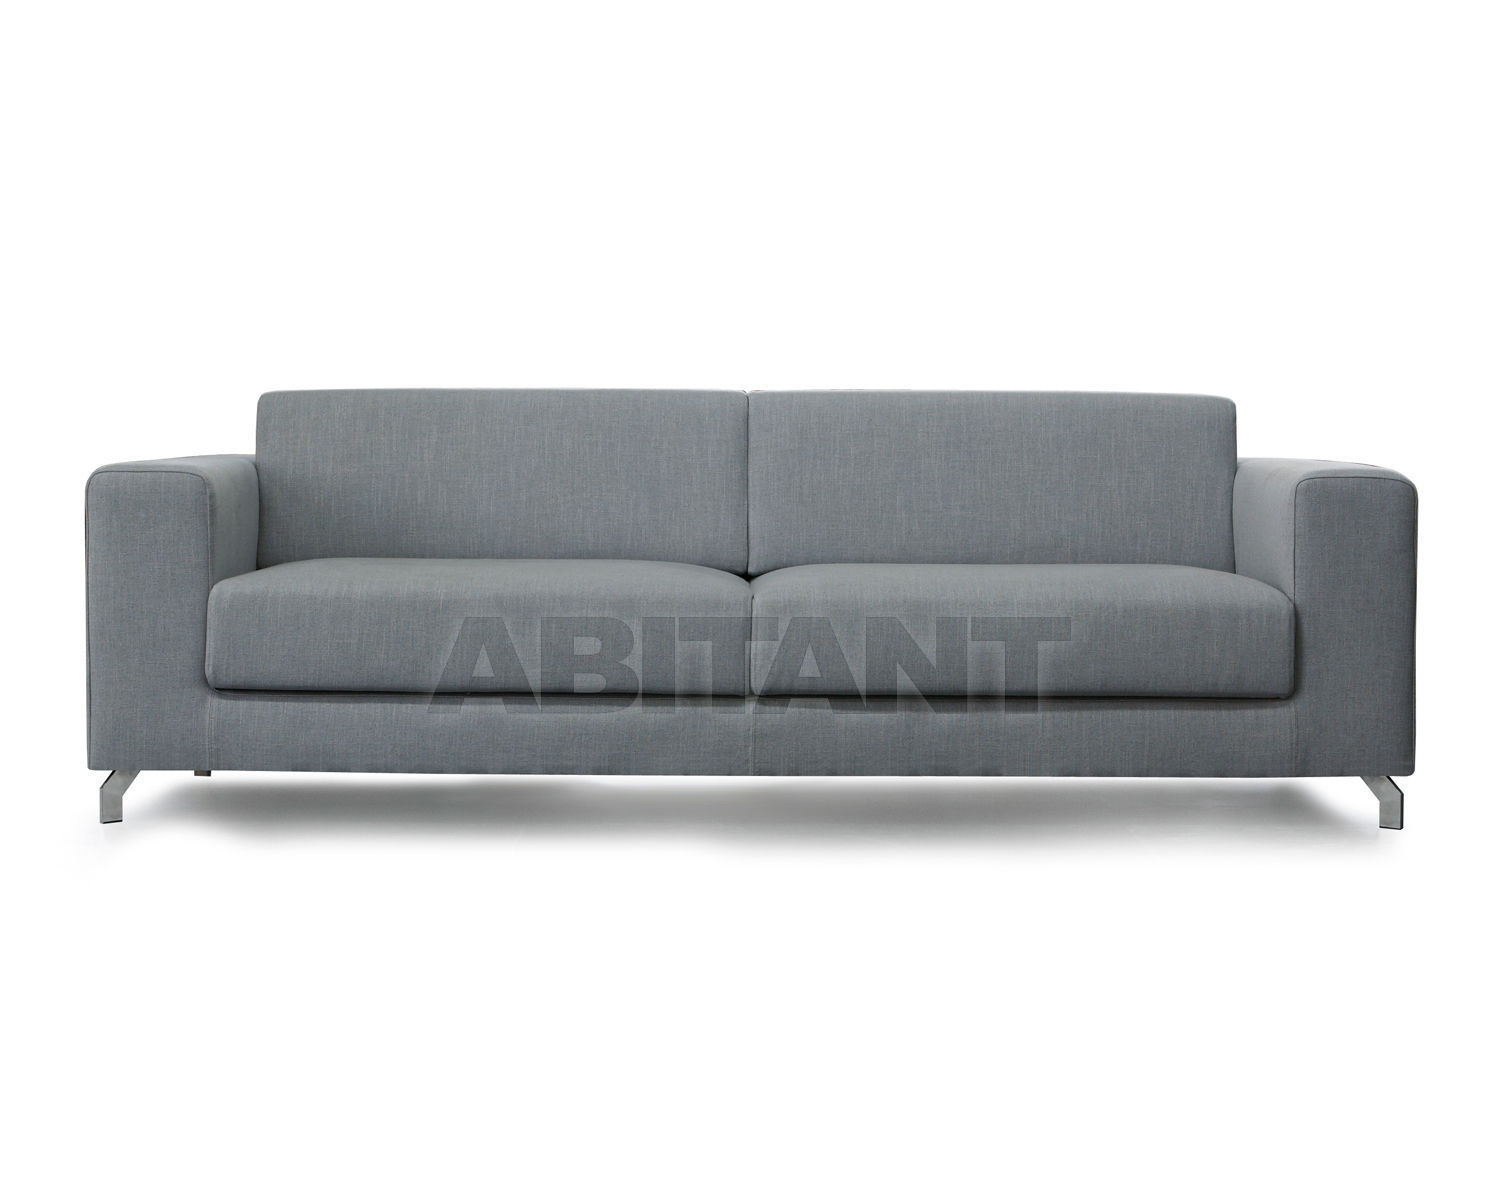 Купить Диван City Compacto Sancal Diseno, S.L. Sofa 243.11.Y.6